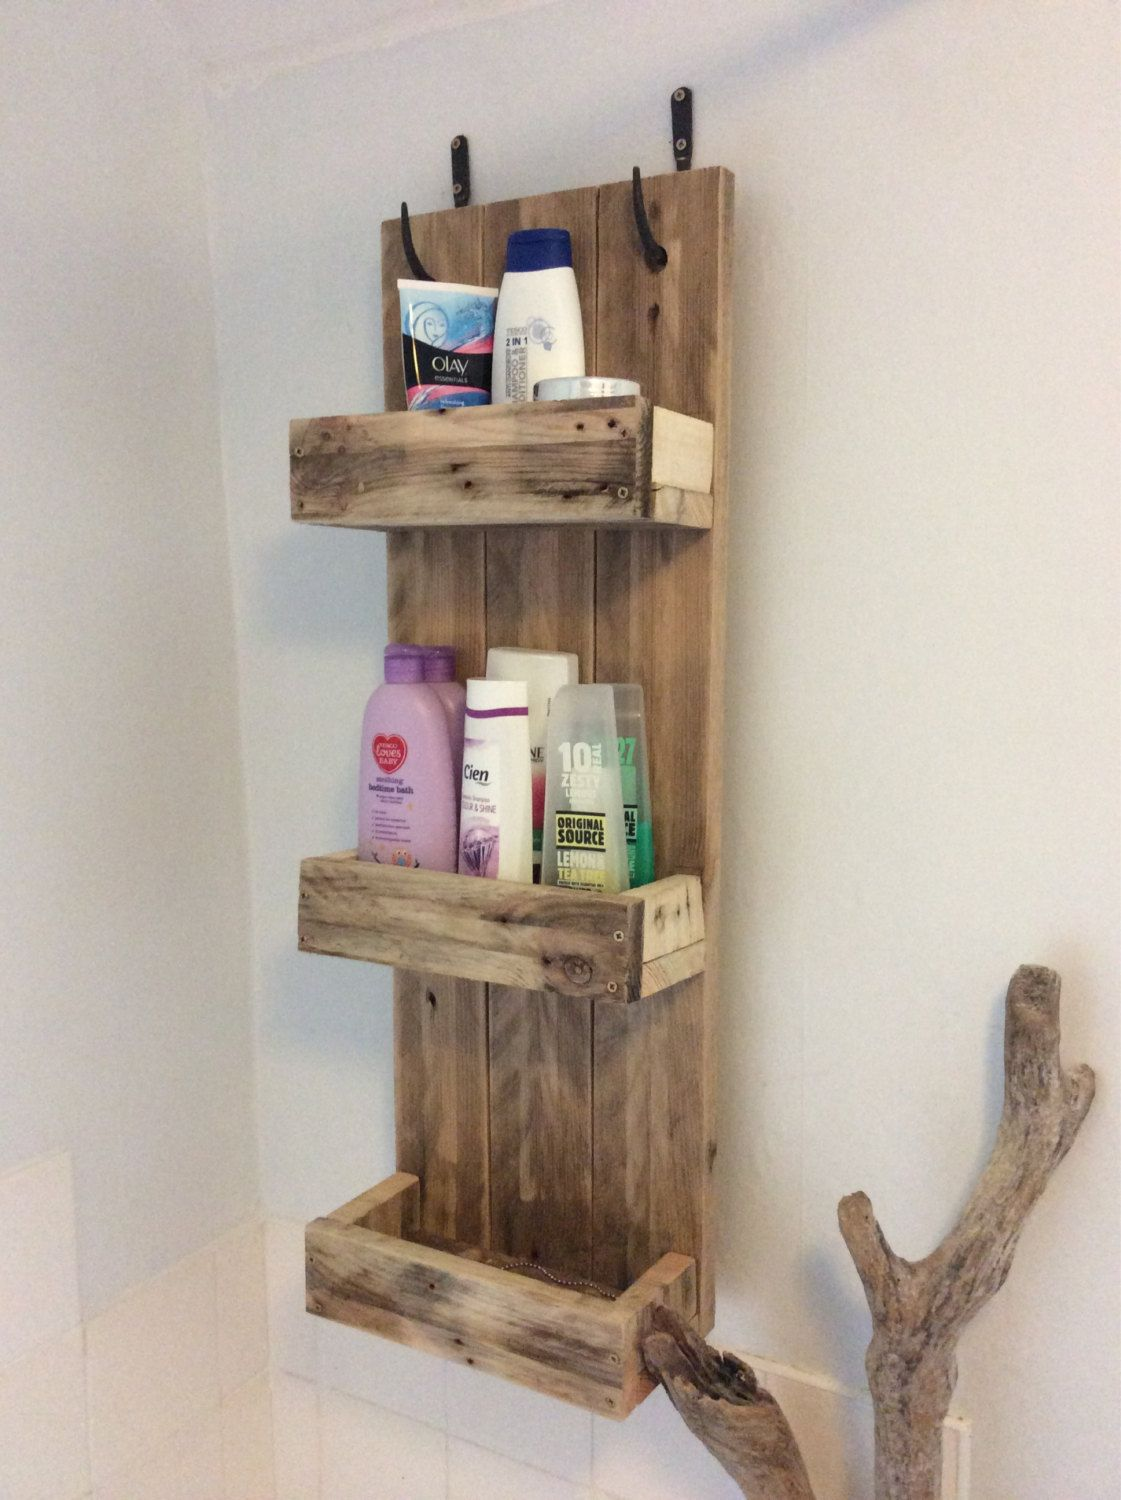 Medium Crop Of Wooden Bathroom Shelf